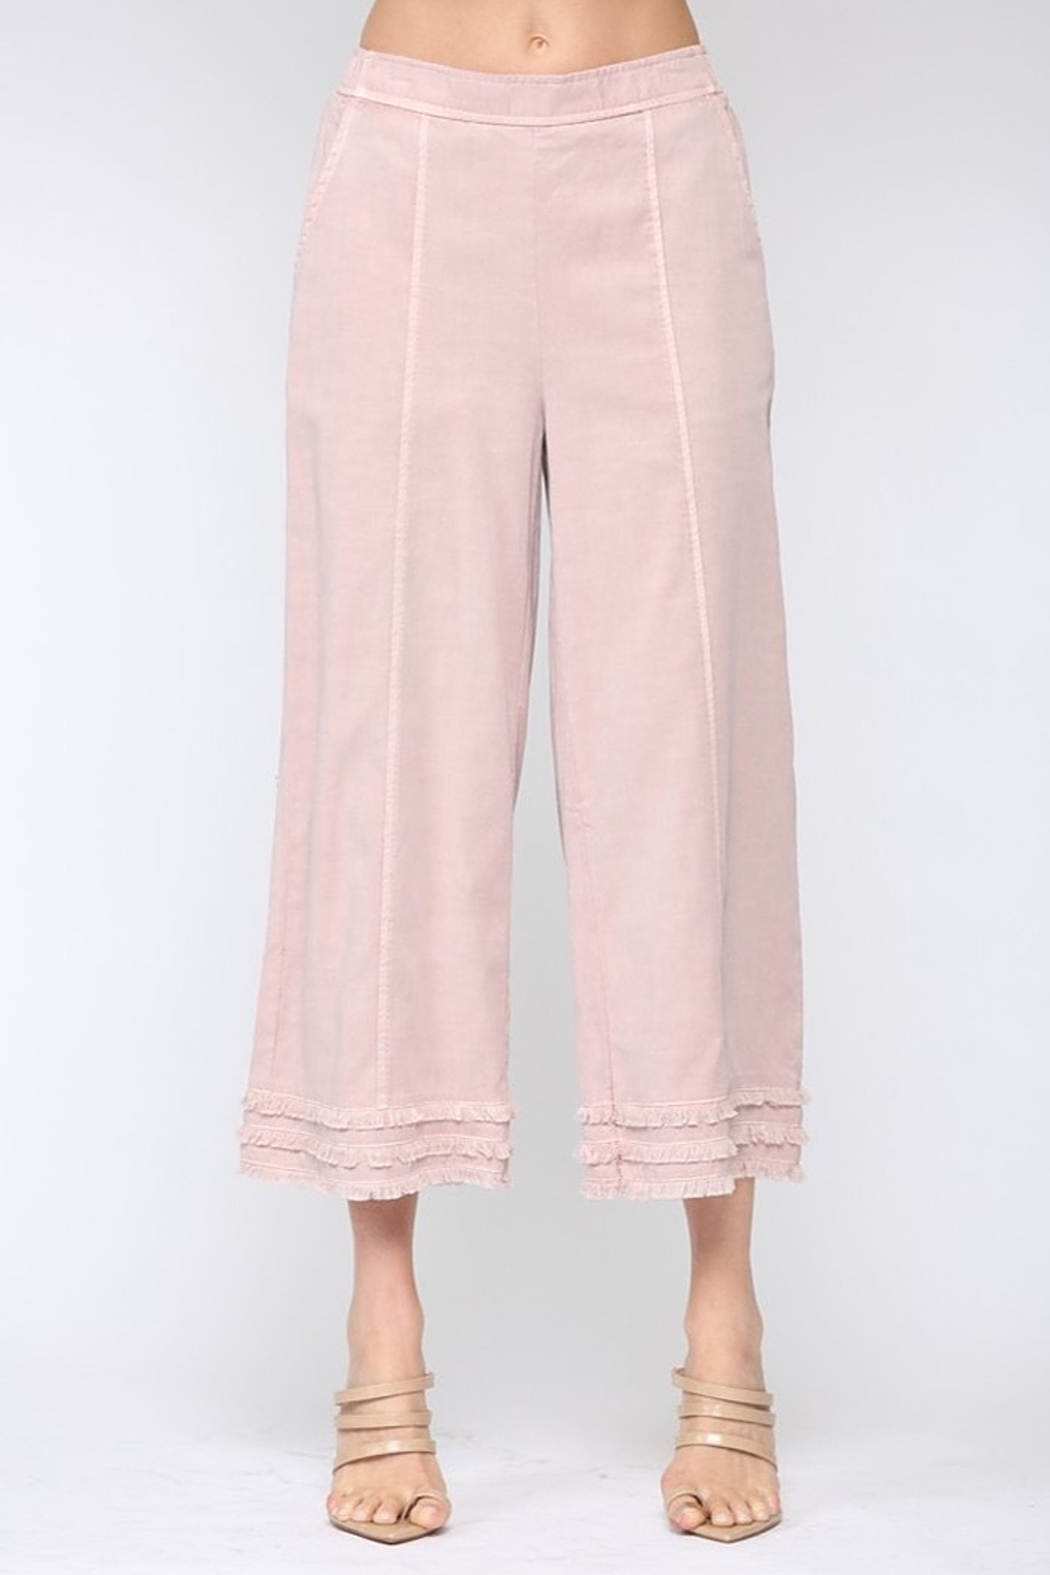 Fate Cotton Candy Frayed Culottes - Main Image